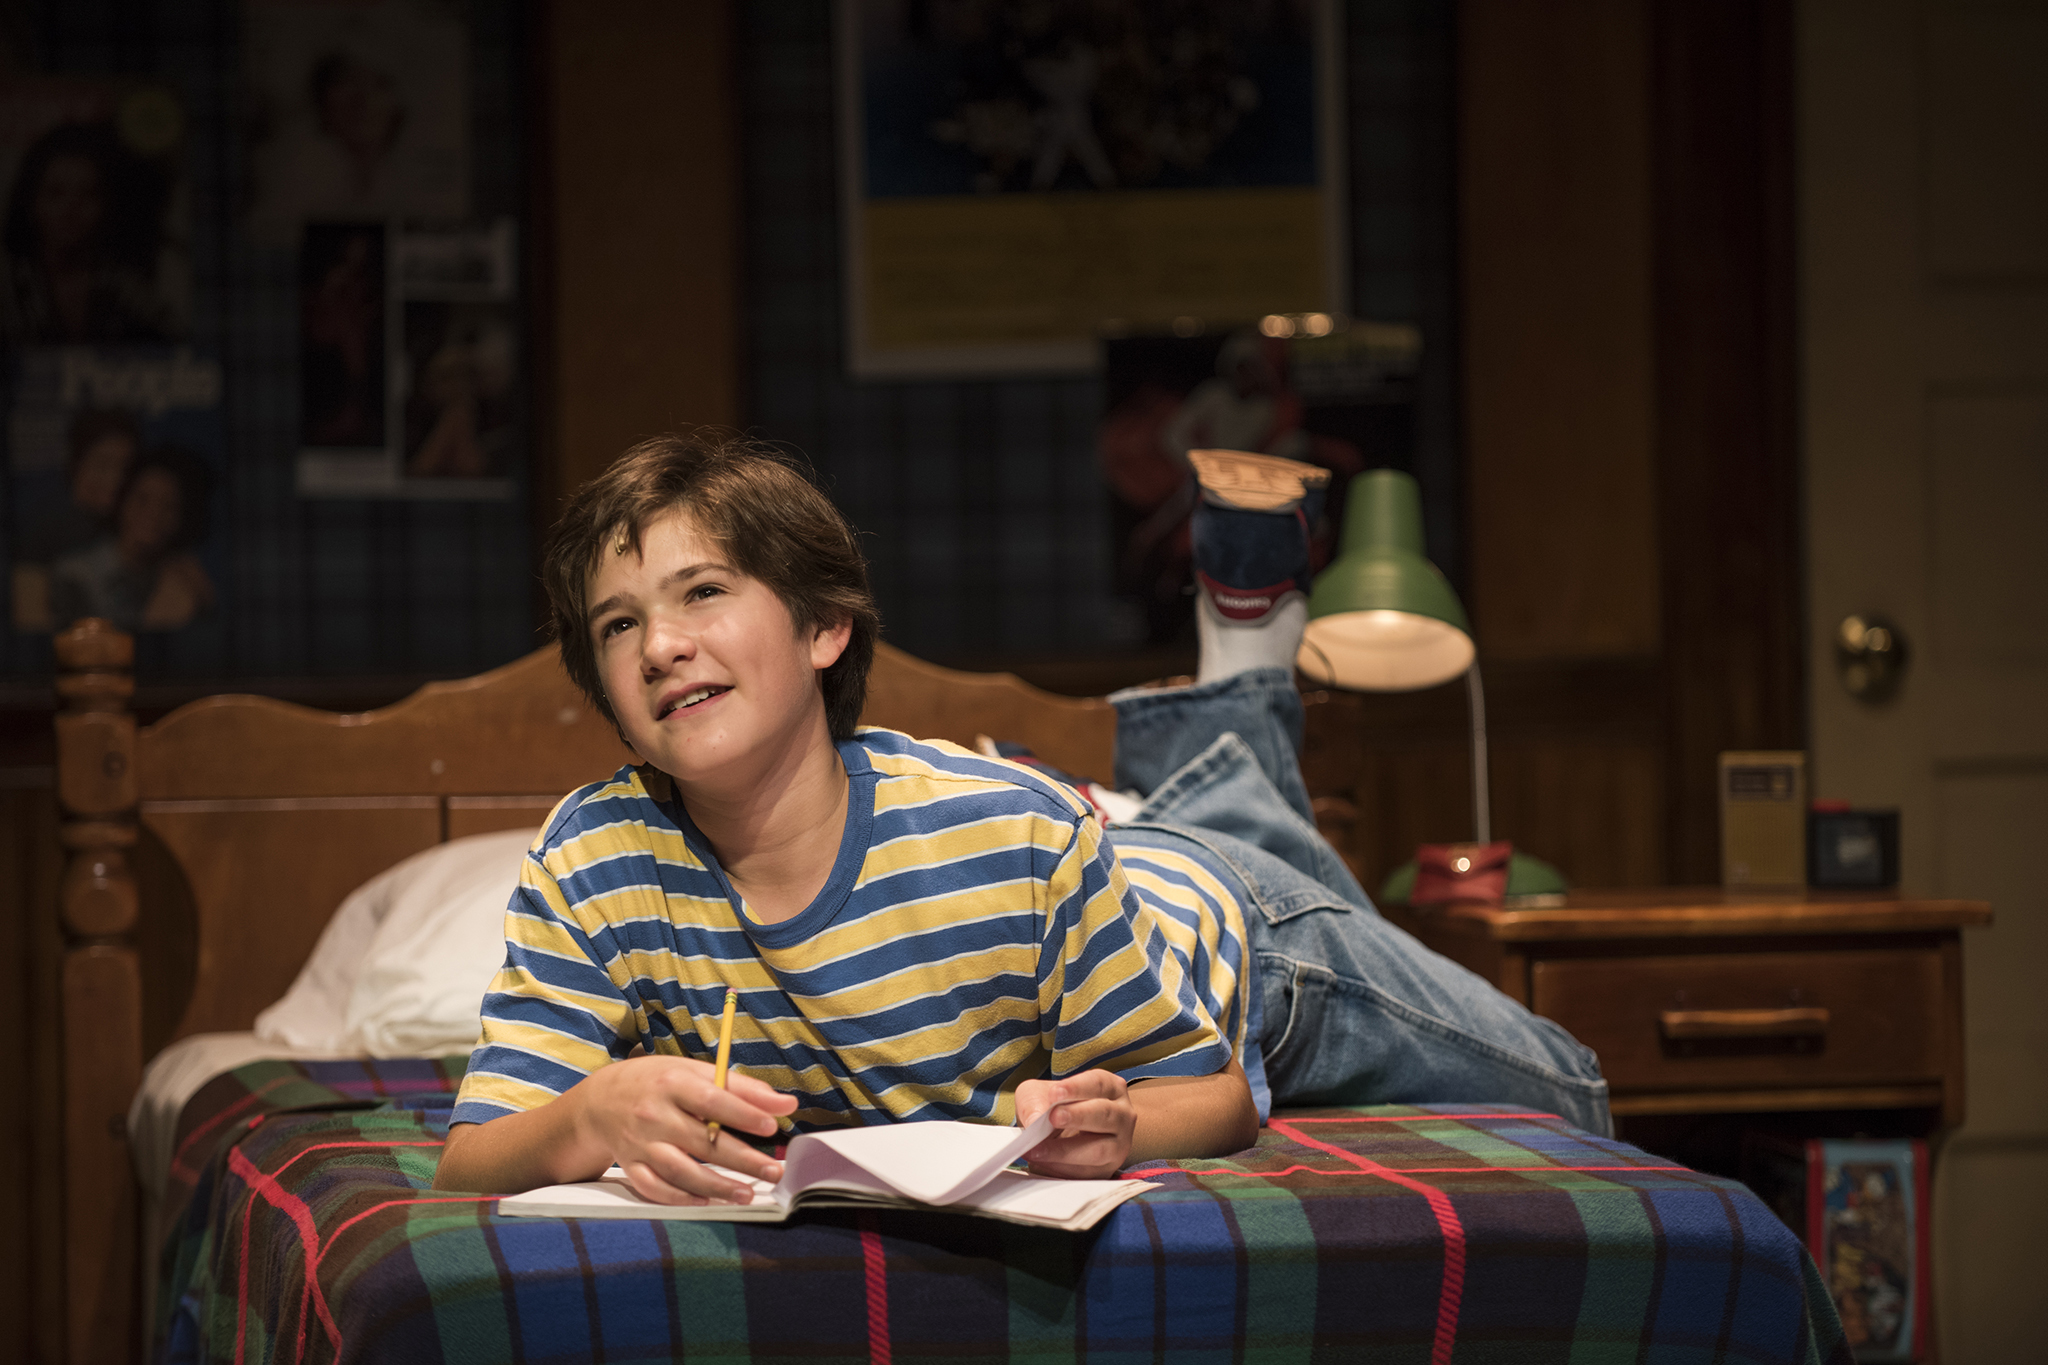 'Trevor' is an upbeat, optimistic new musical about getting past junior high